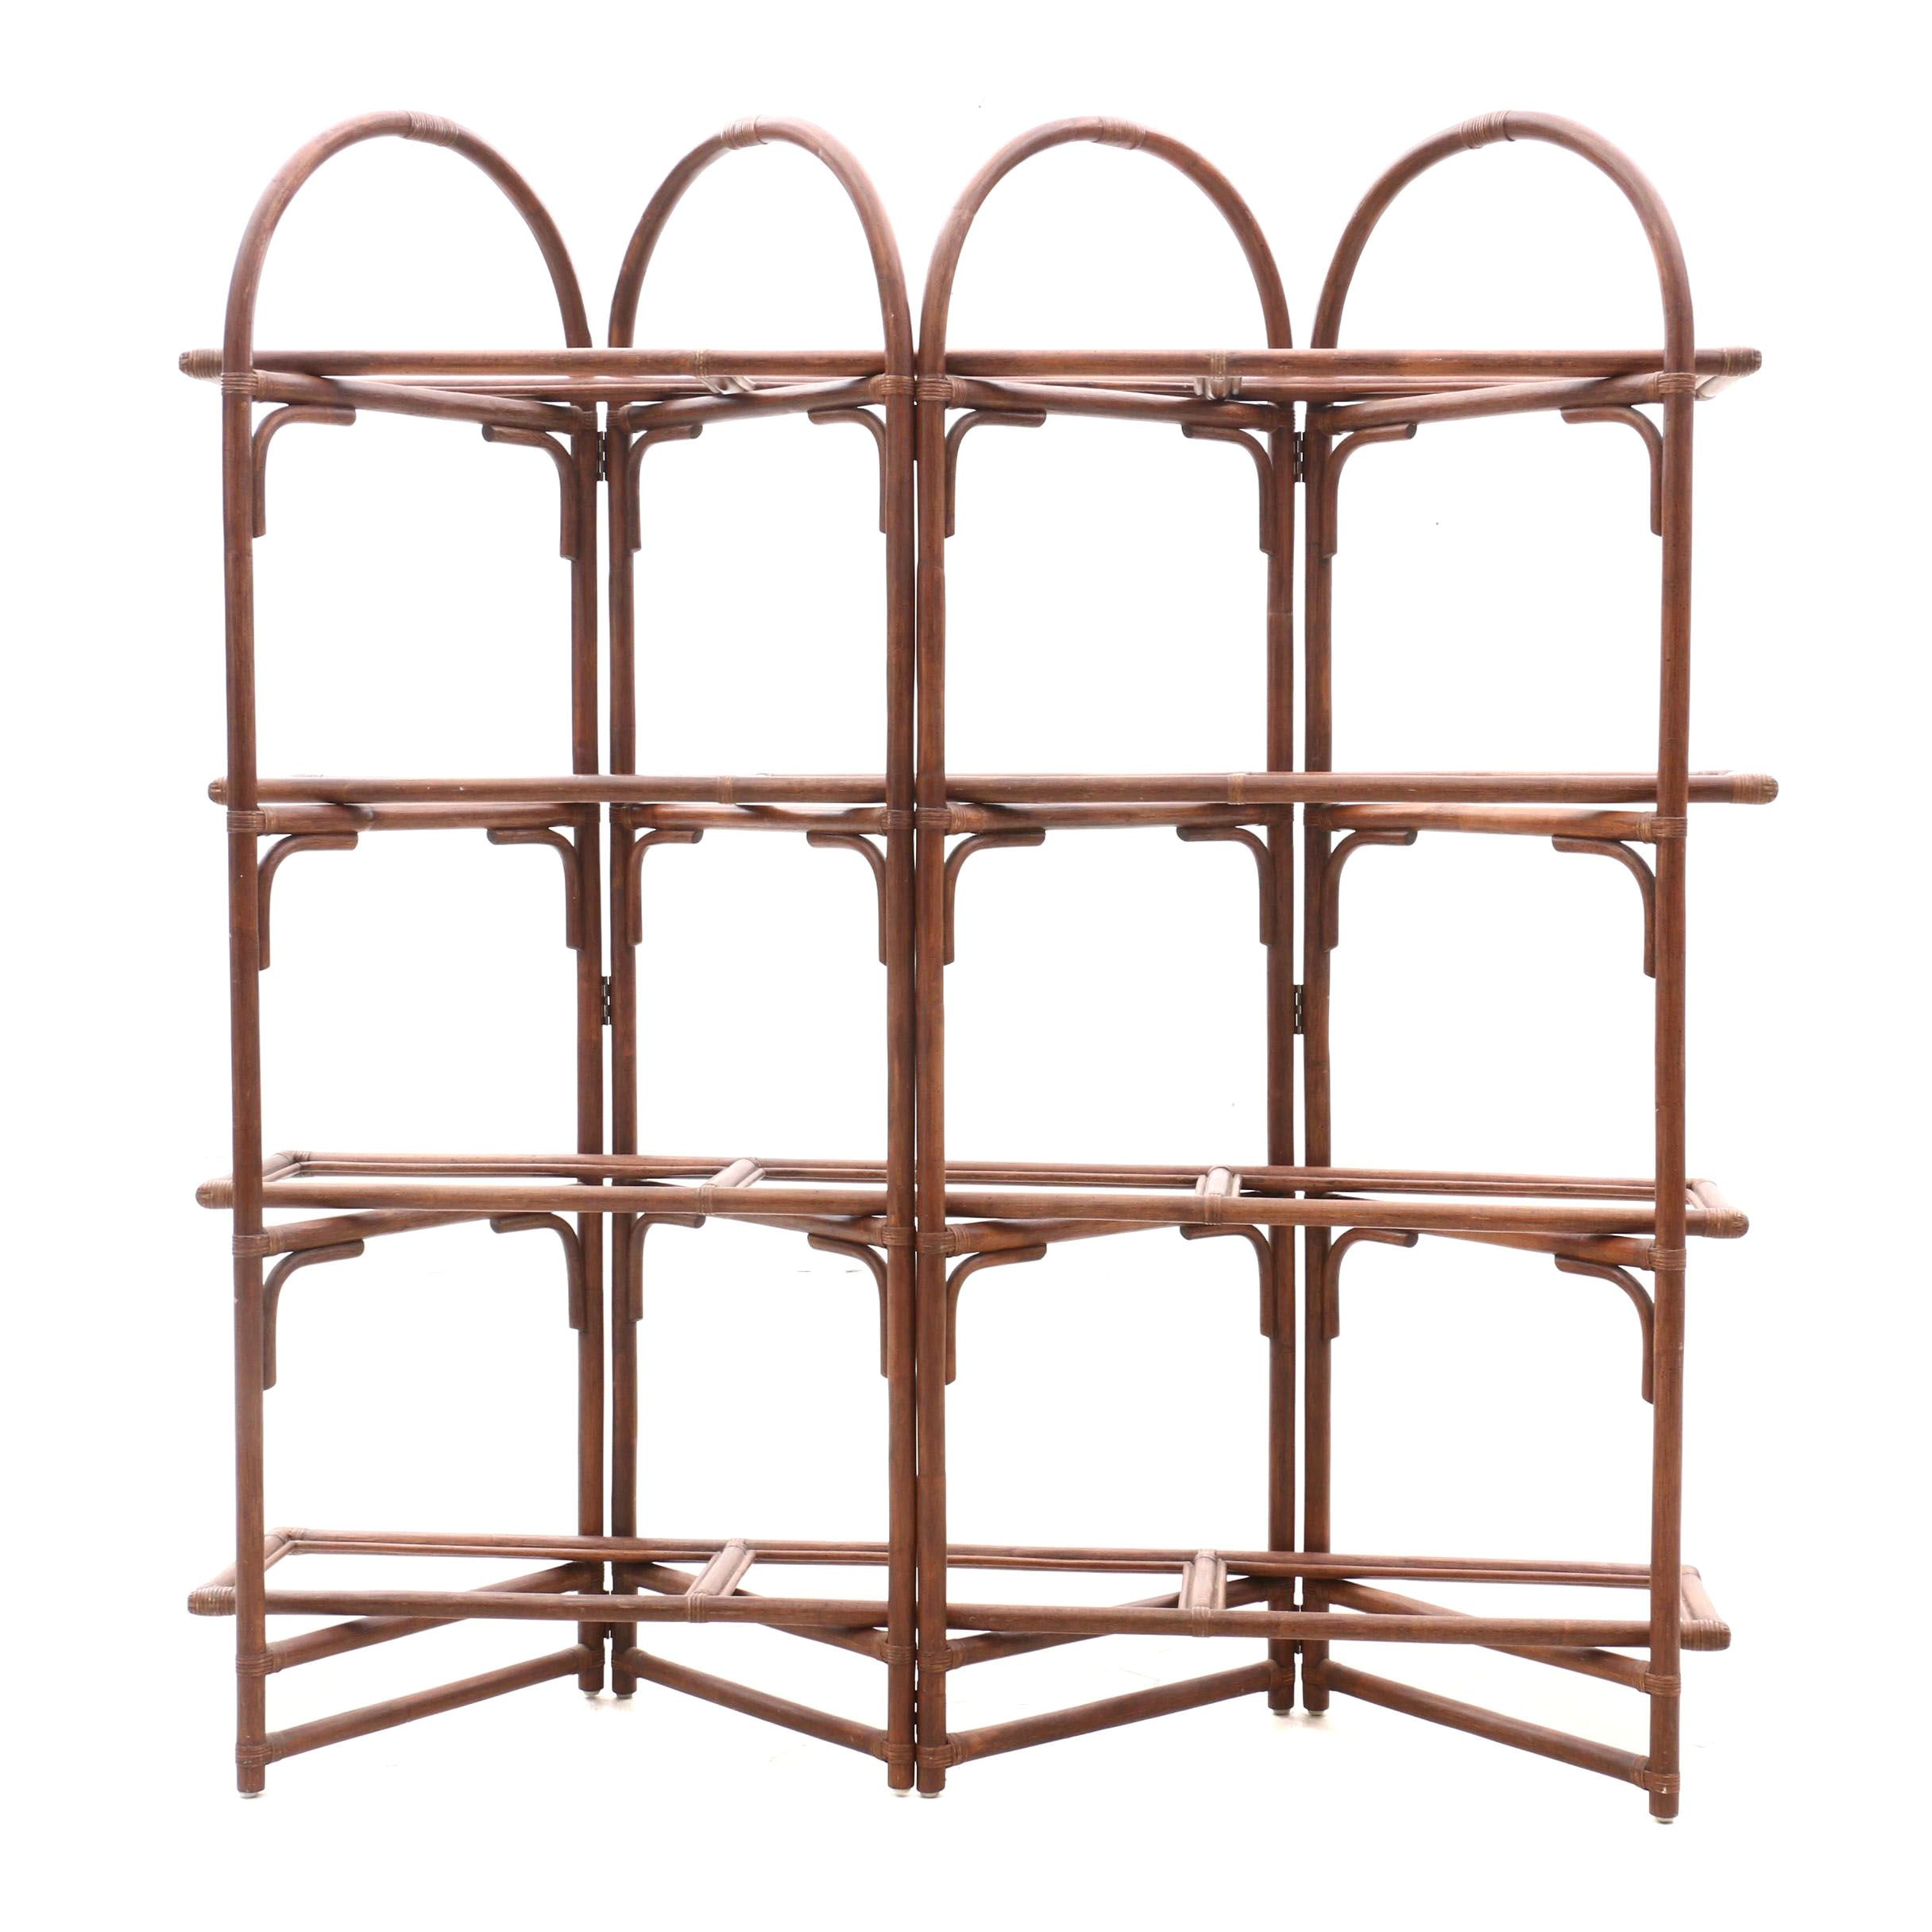 Rattan and Glass Shelving Unit, Contemporary